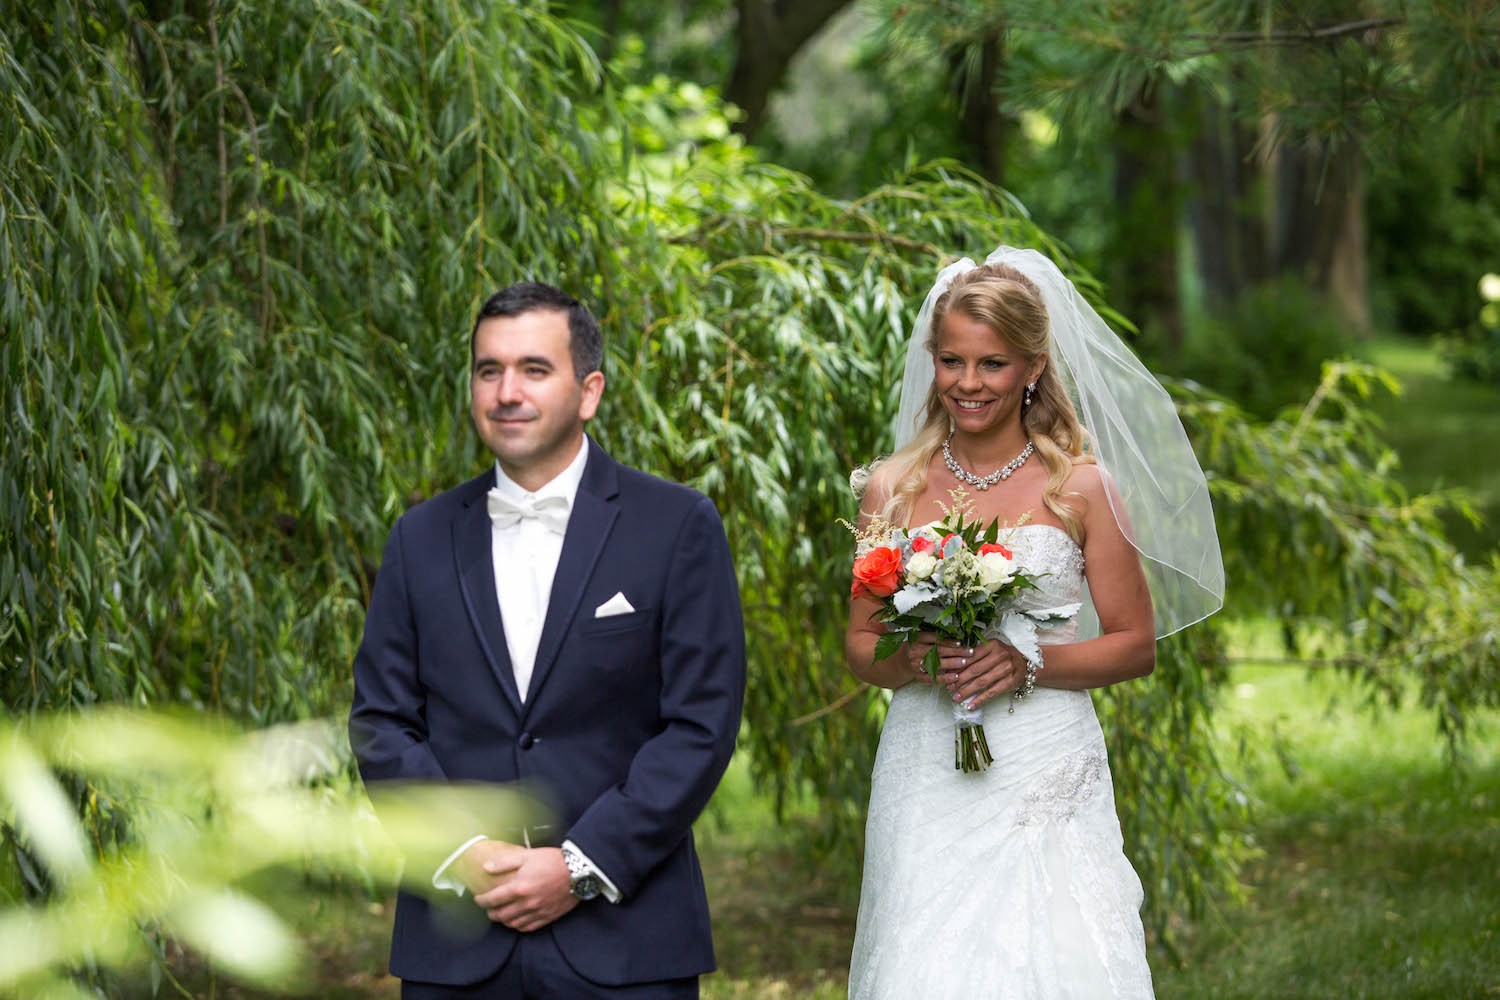 Cindyrellas Garden, outdoor lake ceremony in Minnesota, first look